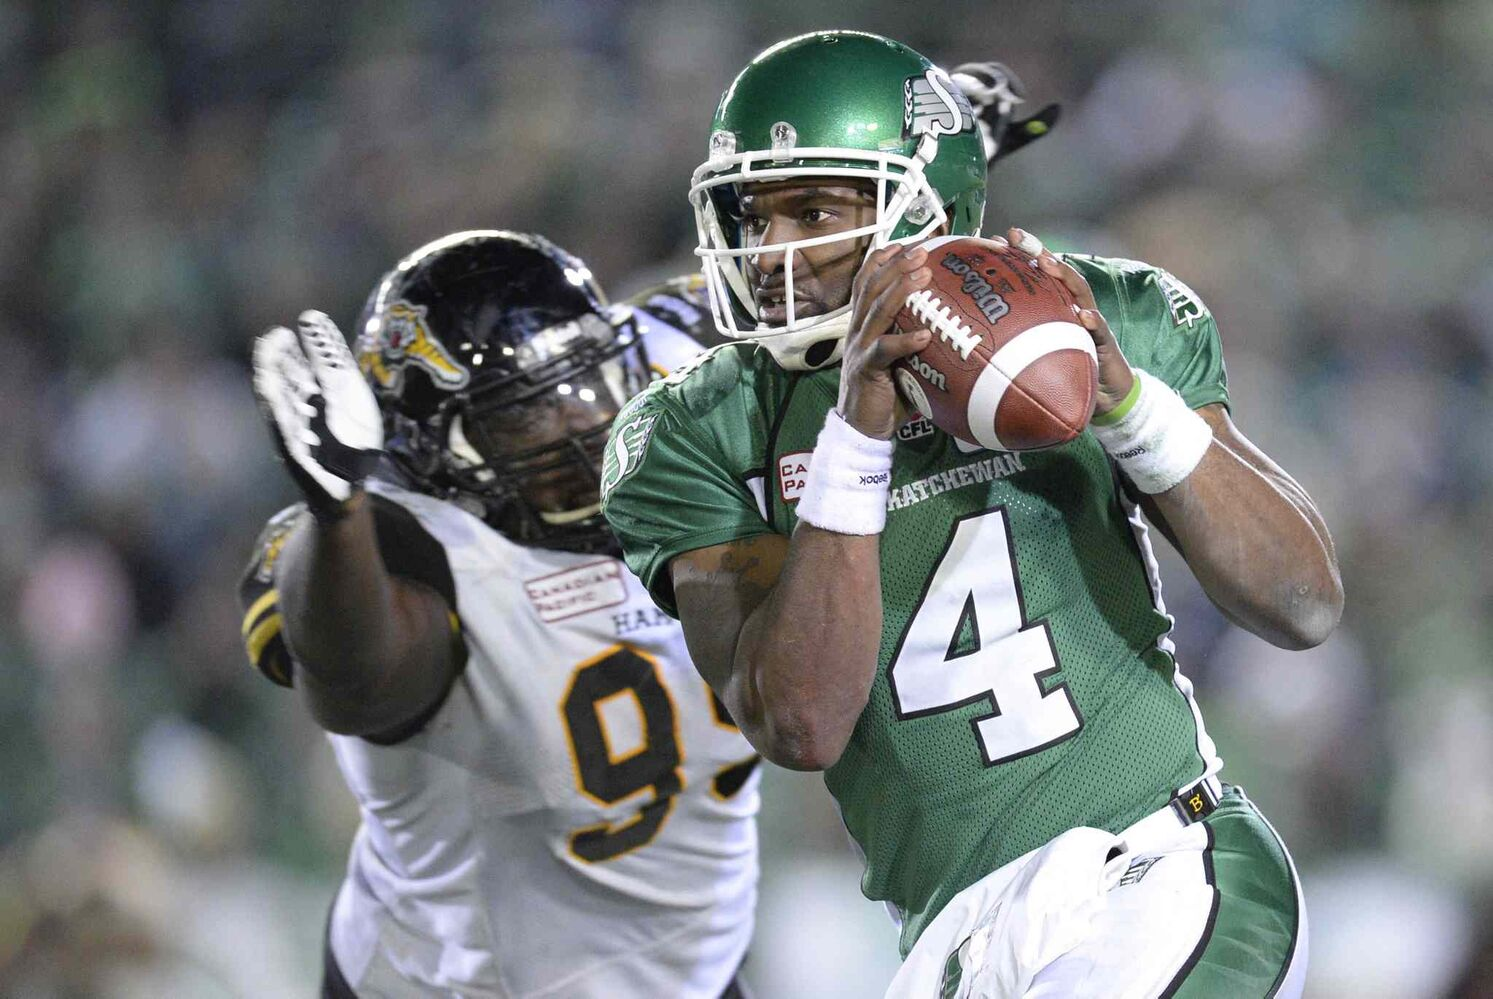 Saskatchewan Roughriders quarterback Darian Durant (right) runs with the ball as he is rushed by Hamilton Tiger-Cats defensive lineman Torrey Davis during the fourth quarter. (CP)